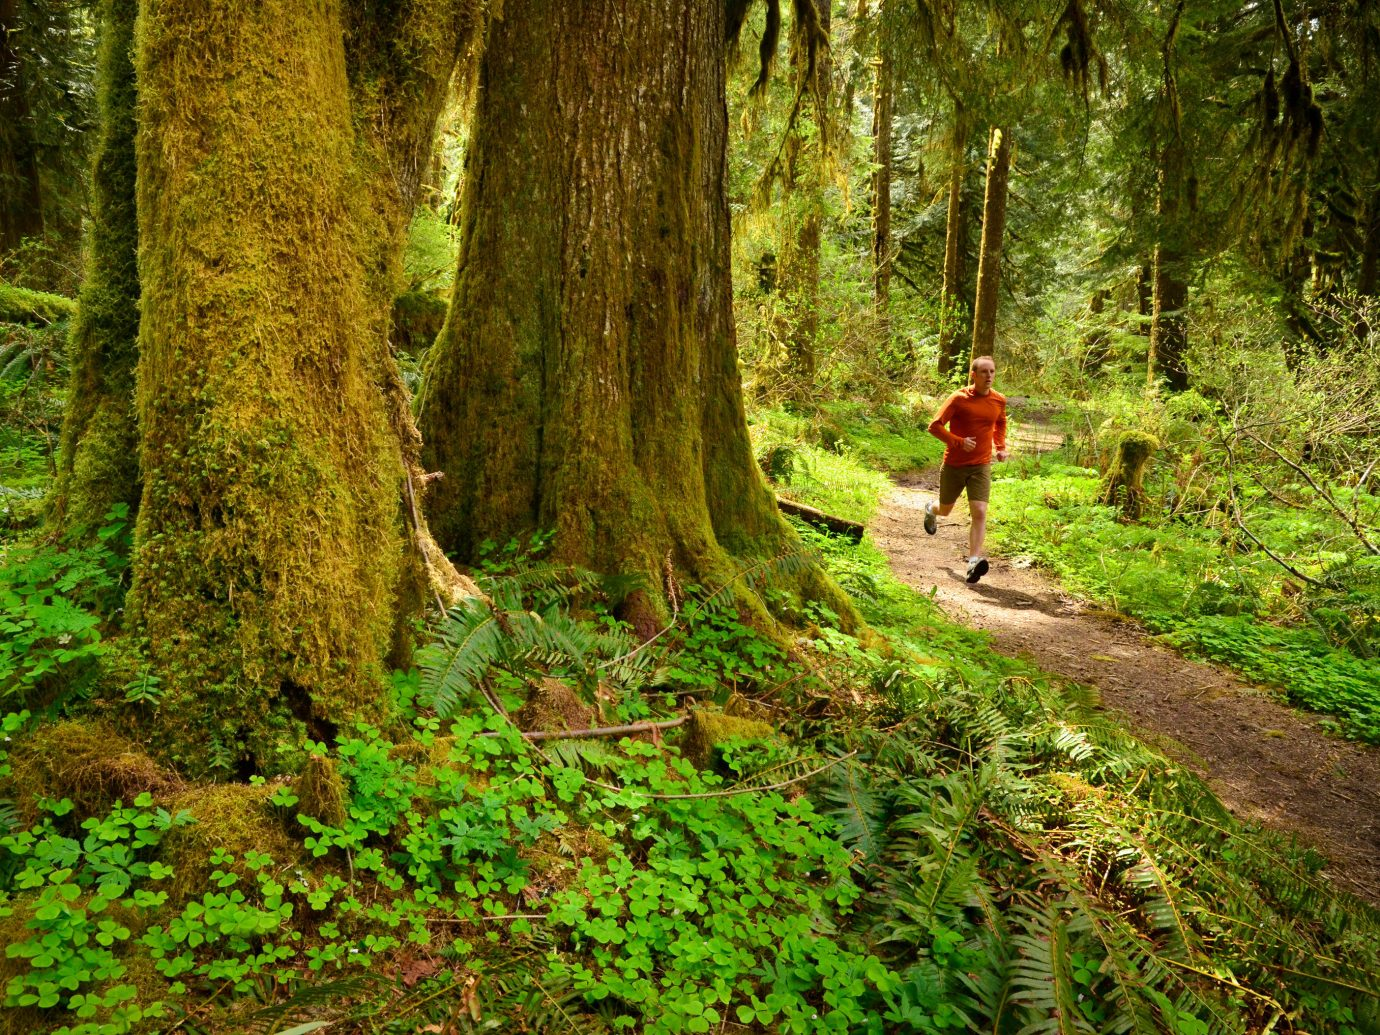 Trip Ideas tree outdoor grass habitat Forest Nature path green trail wilderness woodland vegetation natural environment wood wooded ecosystem old growth forest walking plant leaf temperate broadleaf and mixed forest woody plant rainforest autumn sunlight deciduous Jungle temperate coniferous forest ridge biome stream area dirt lush